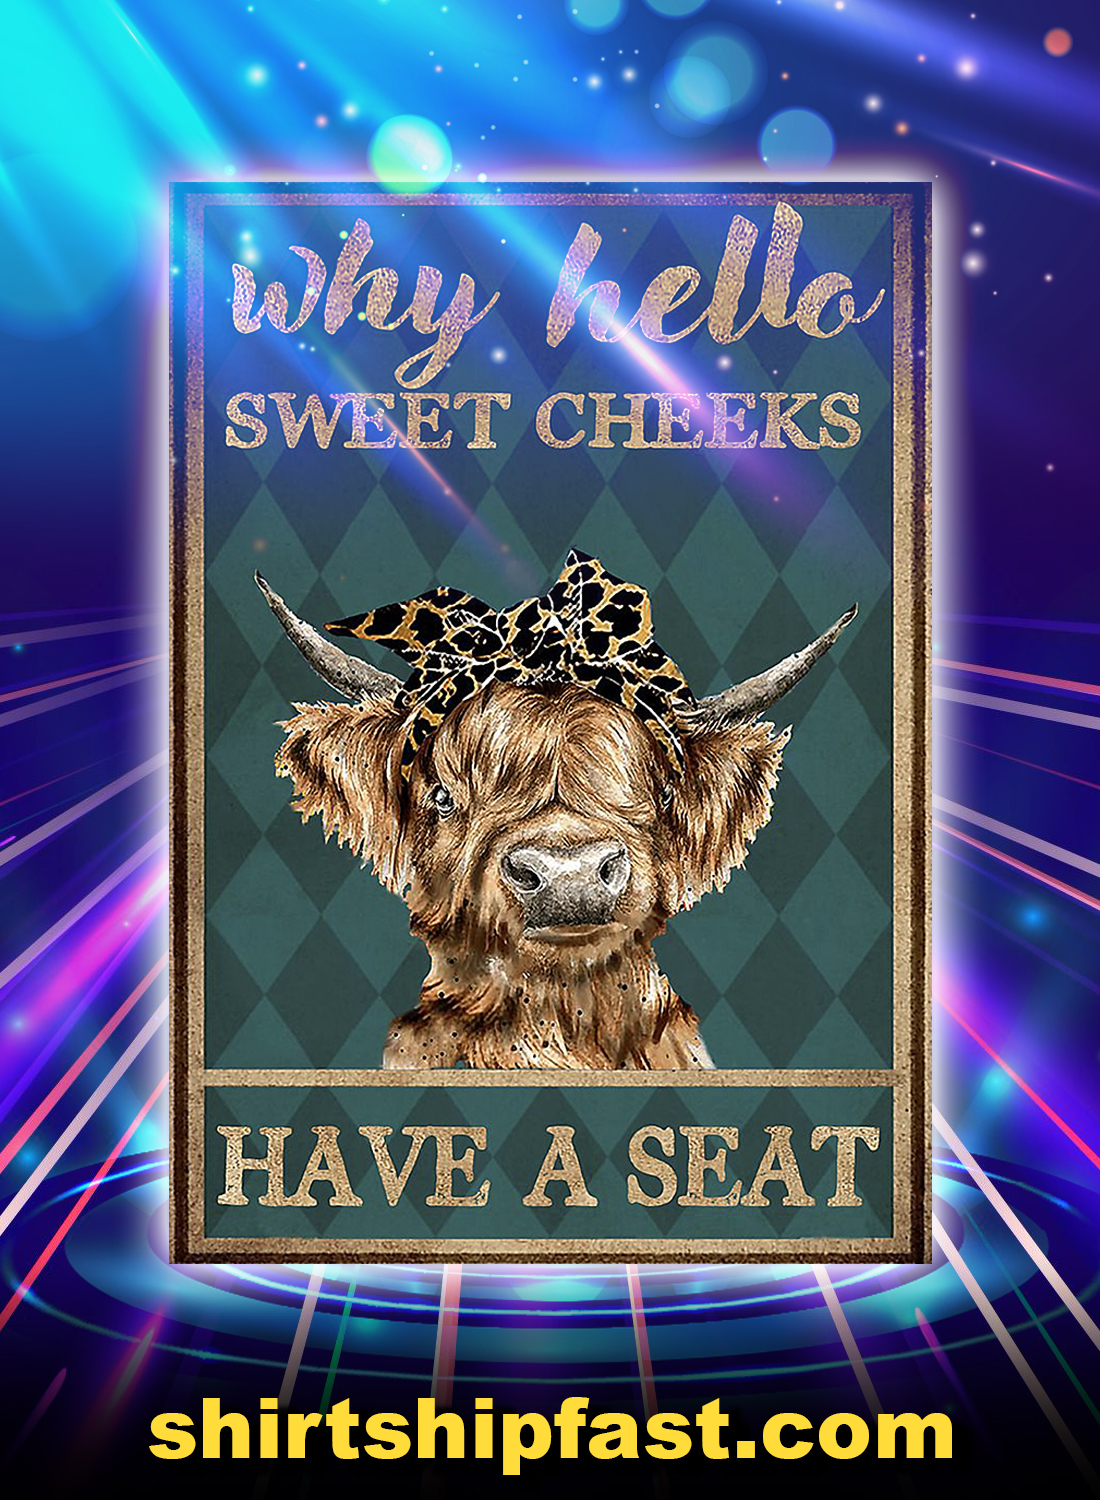 Why hello sweet cheeks have a seat cow highland cattle poster